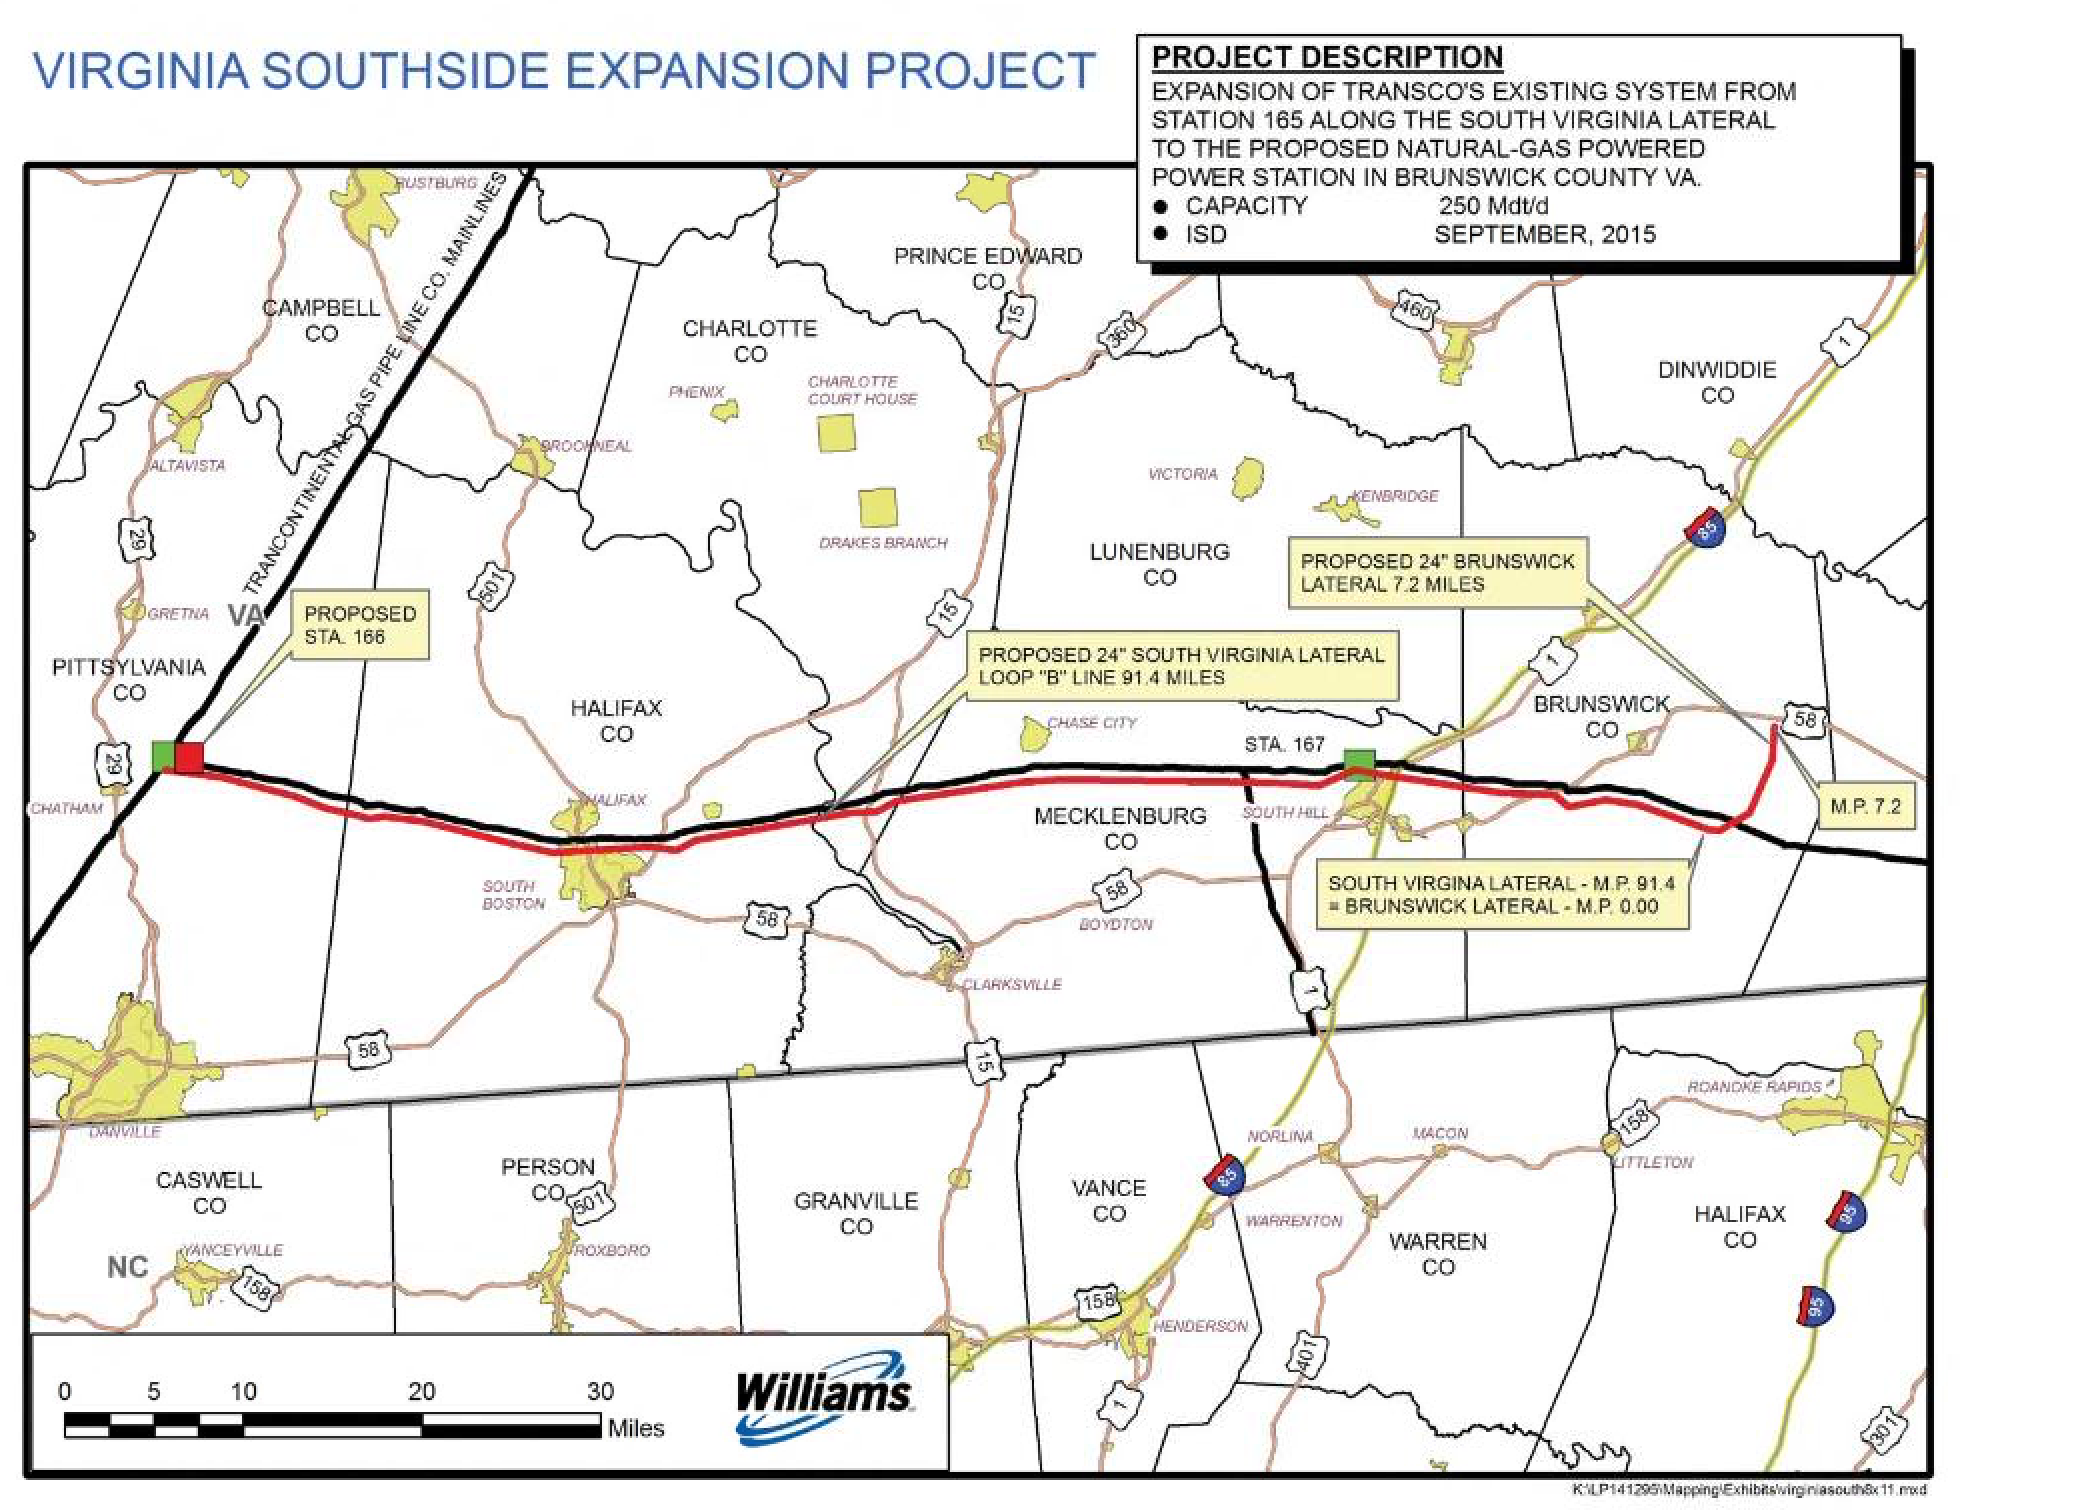 The Virginia Southside II expansion project.